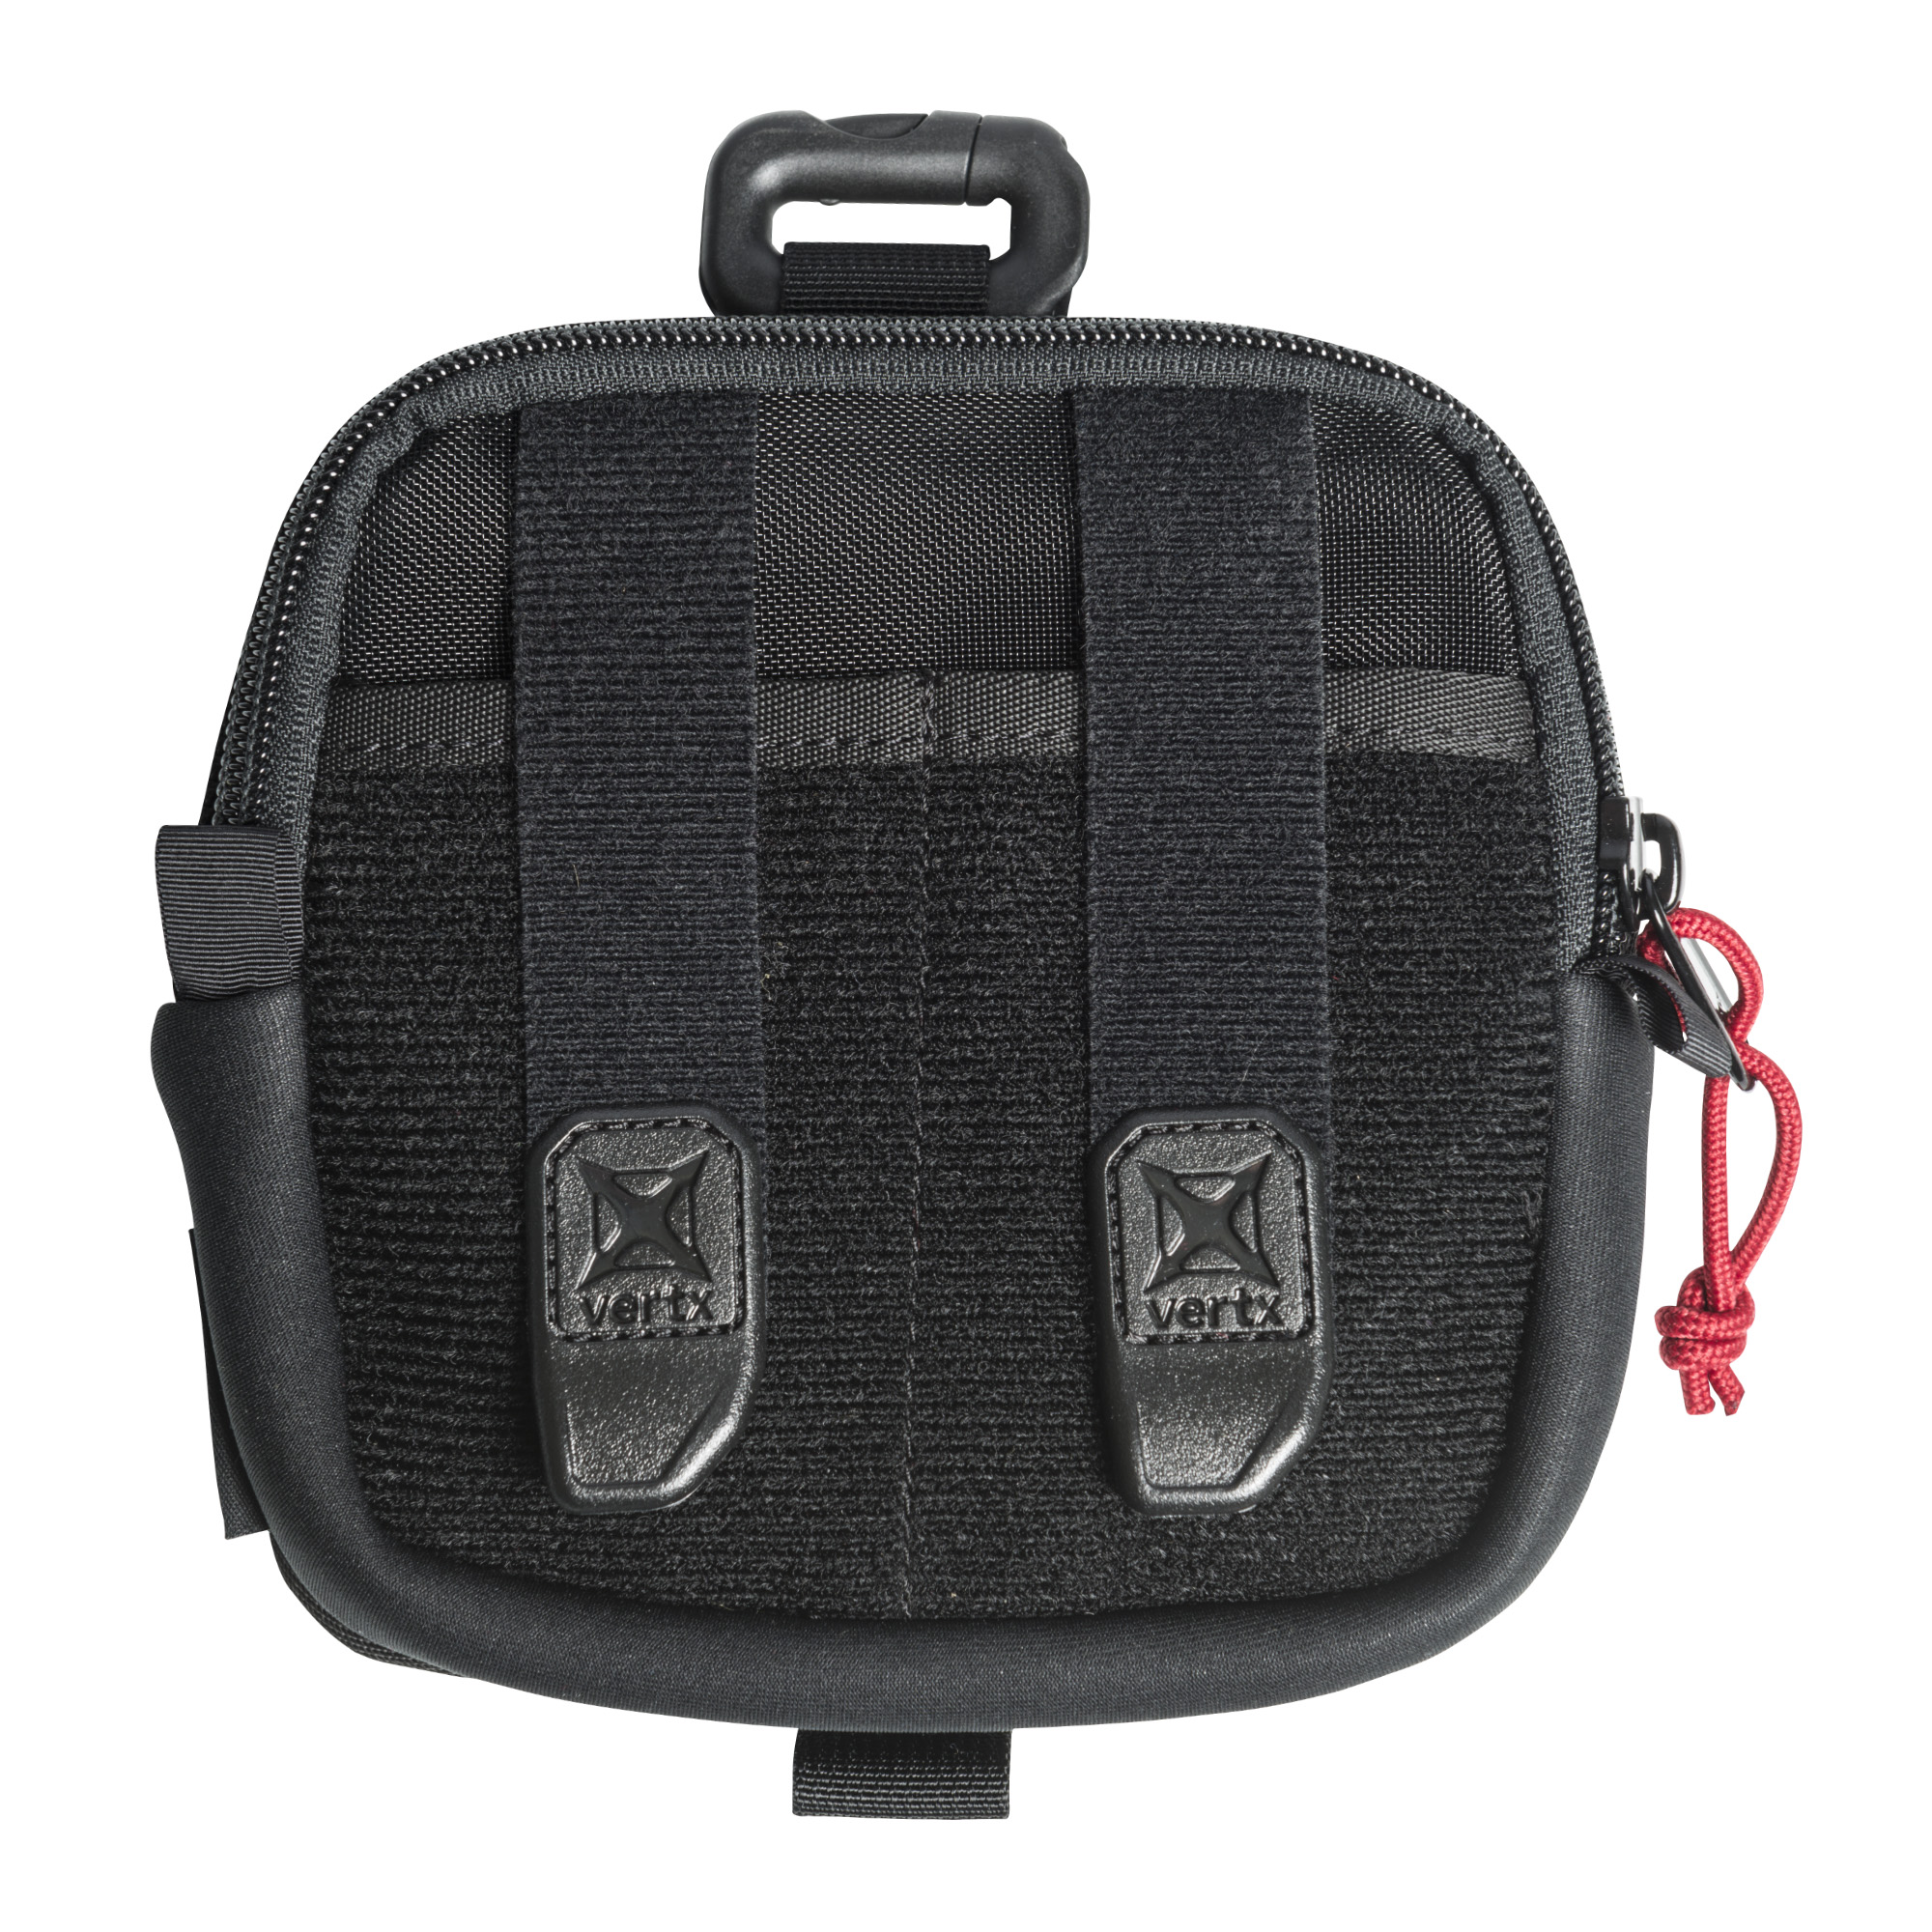 The Tactigami Mini Organizational Pouch securely stows inside any of the Vertx bags or can be used solo to store electronic cables and other small gadgets and gear.